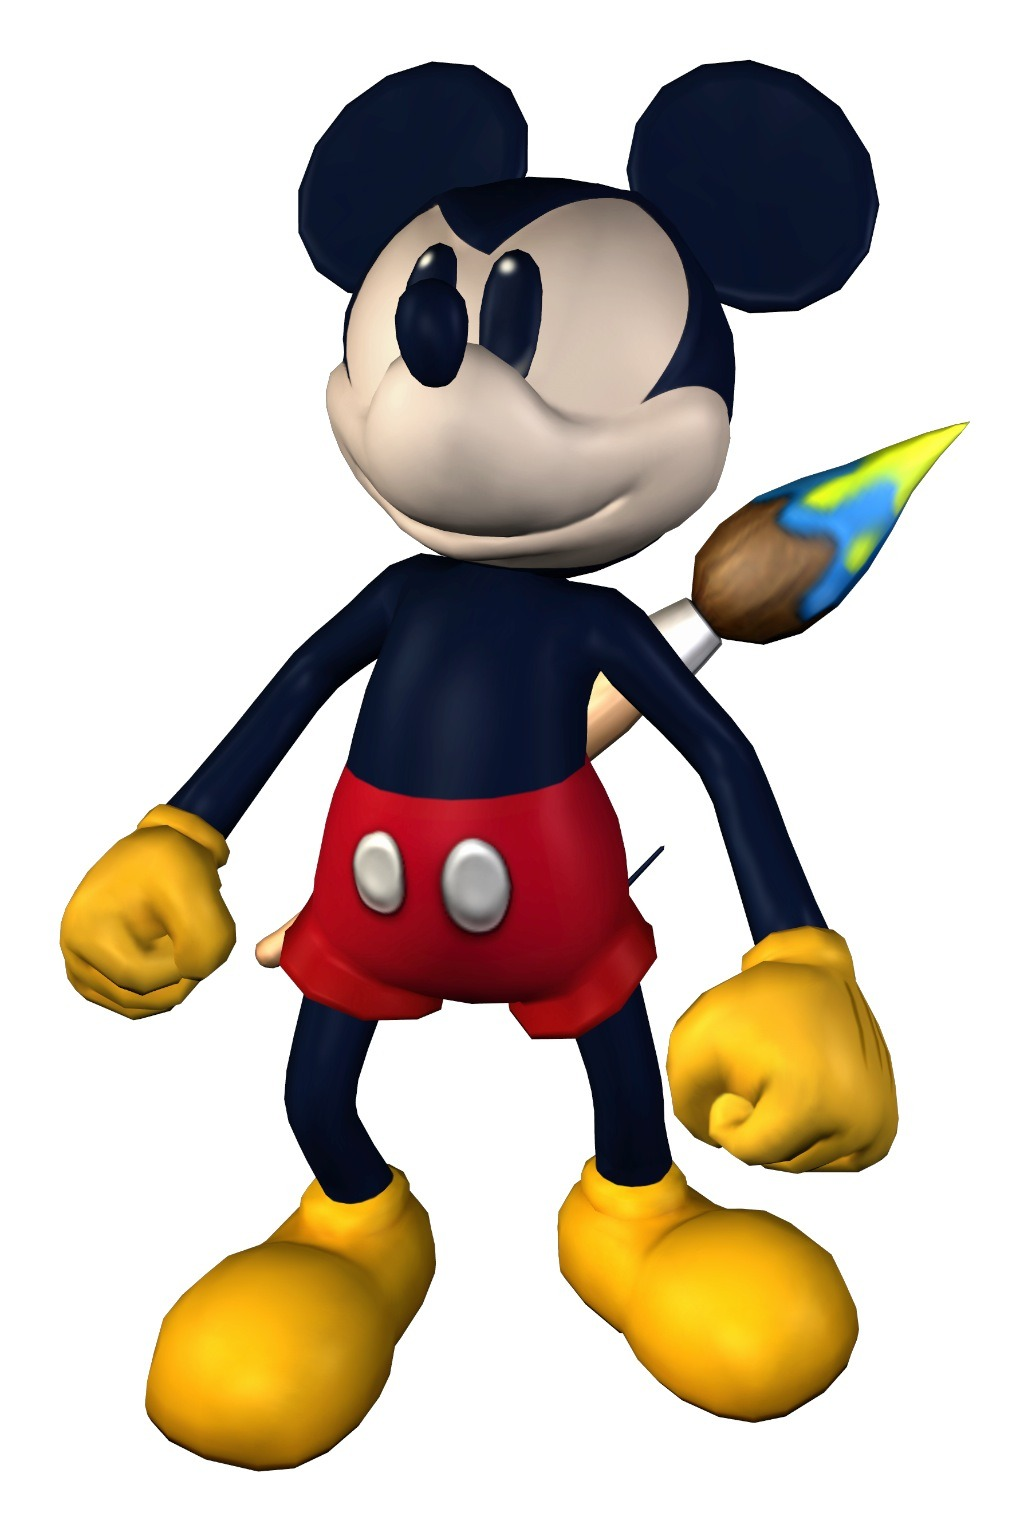 EpicMickey Art 011